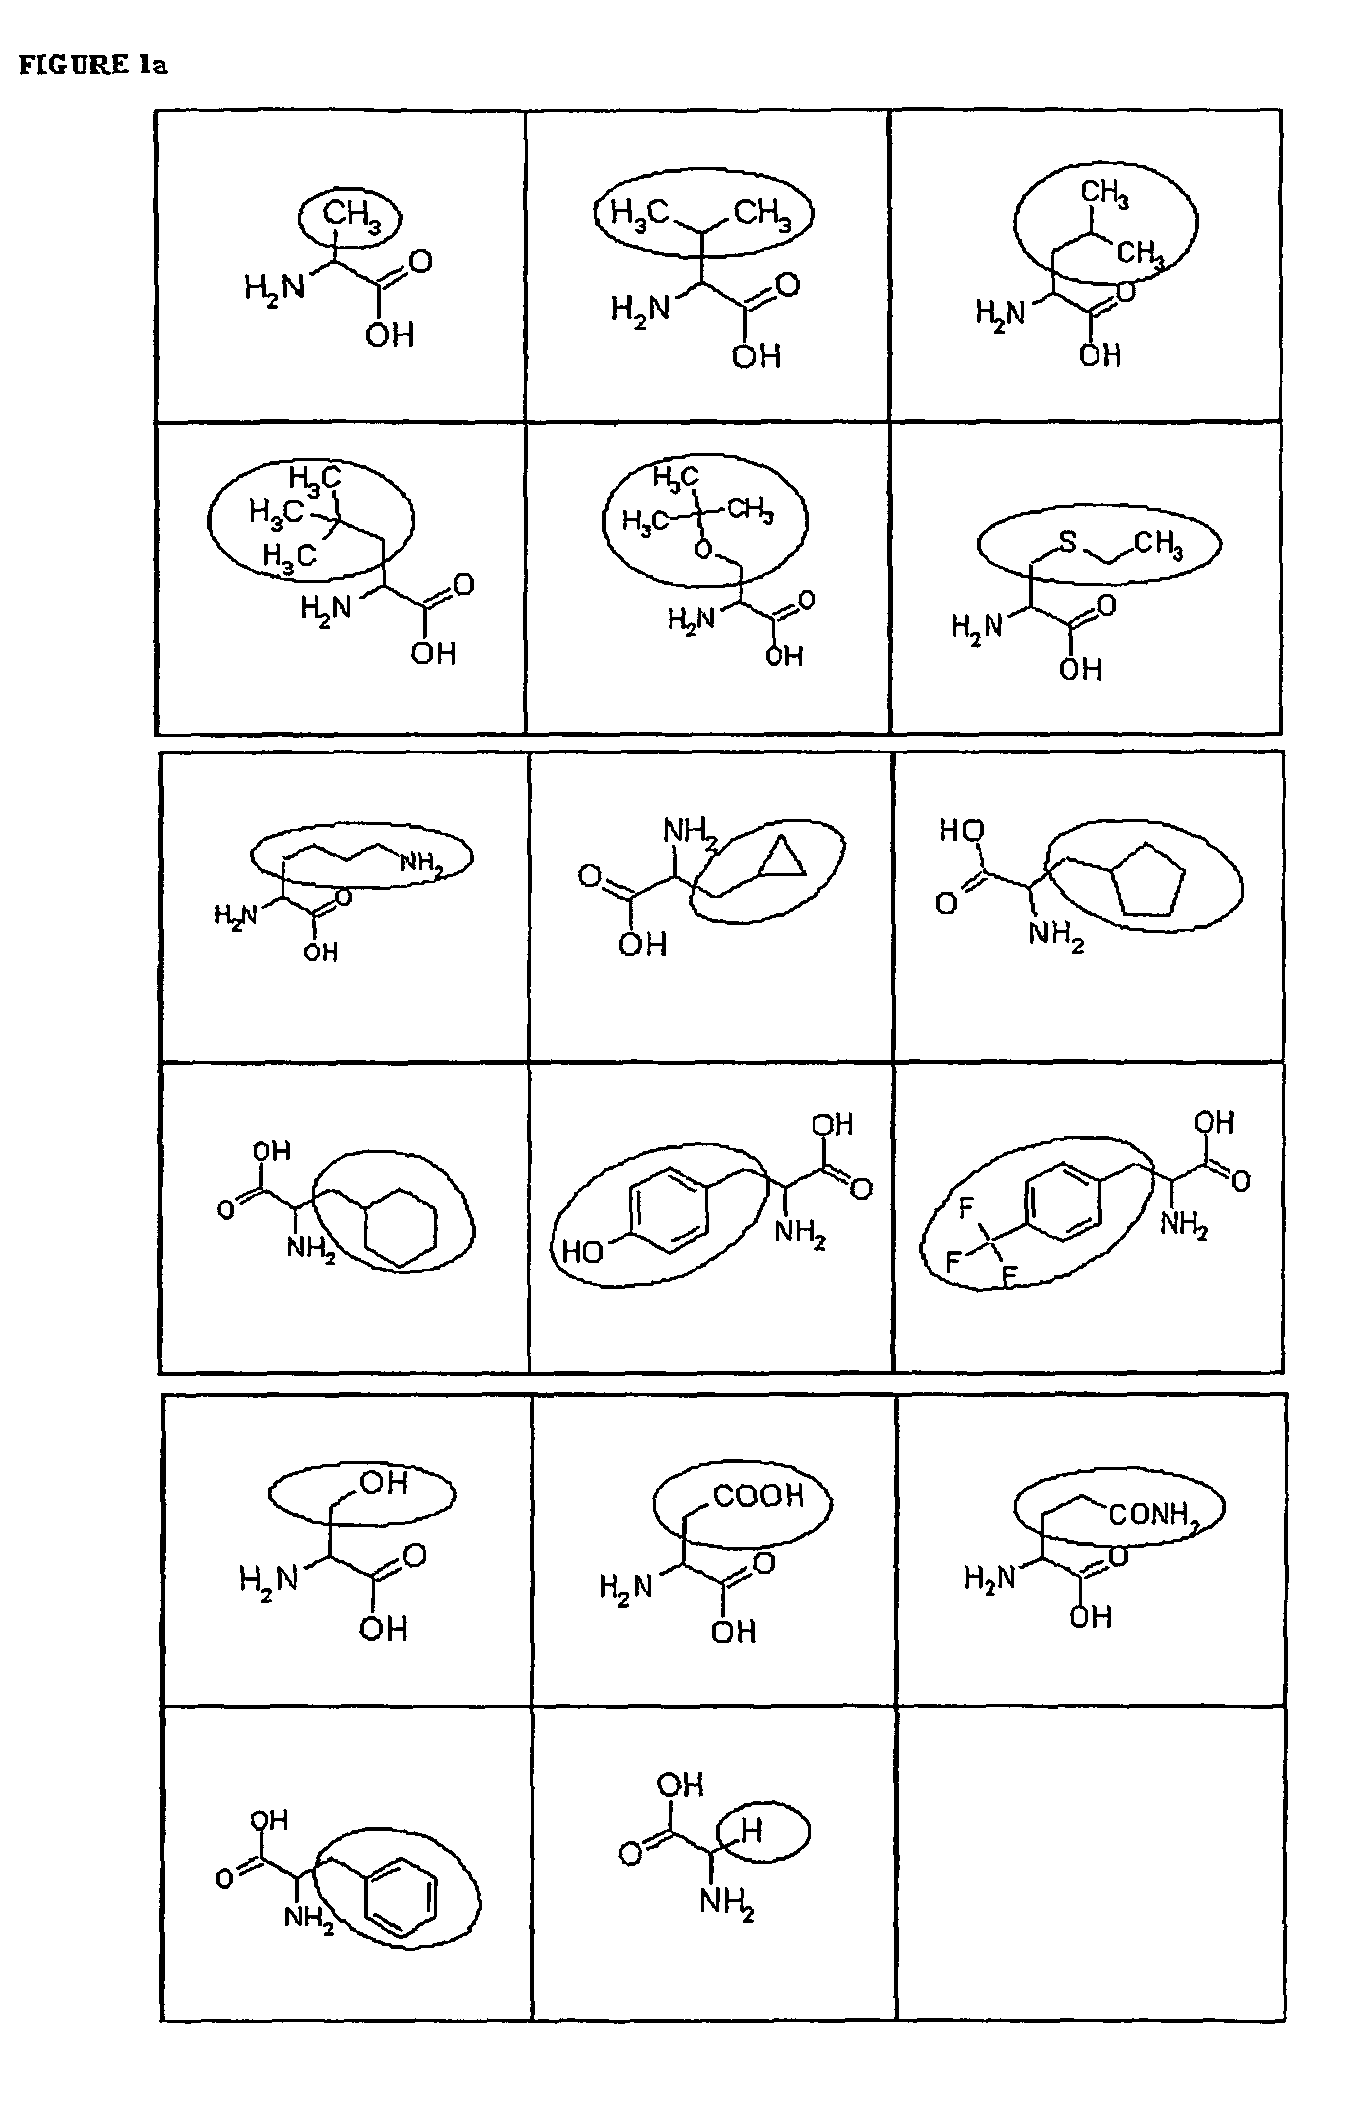 compounds with nootropic action, their preparation